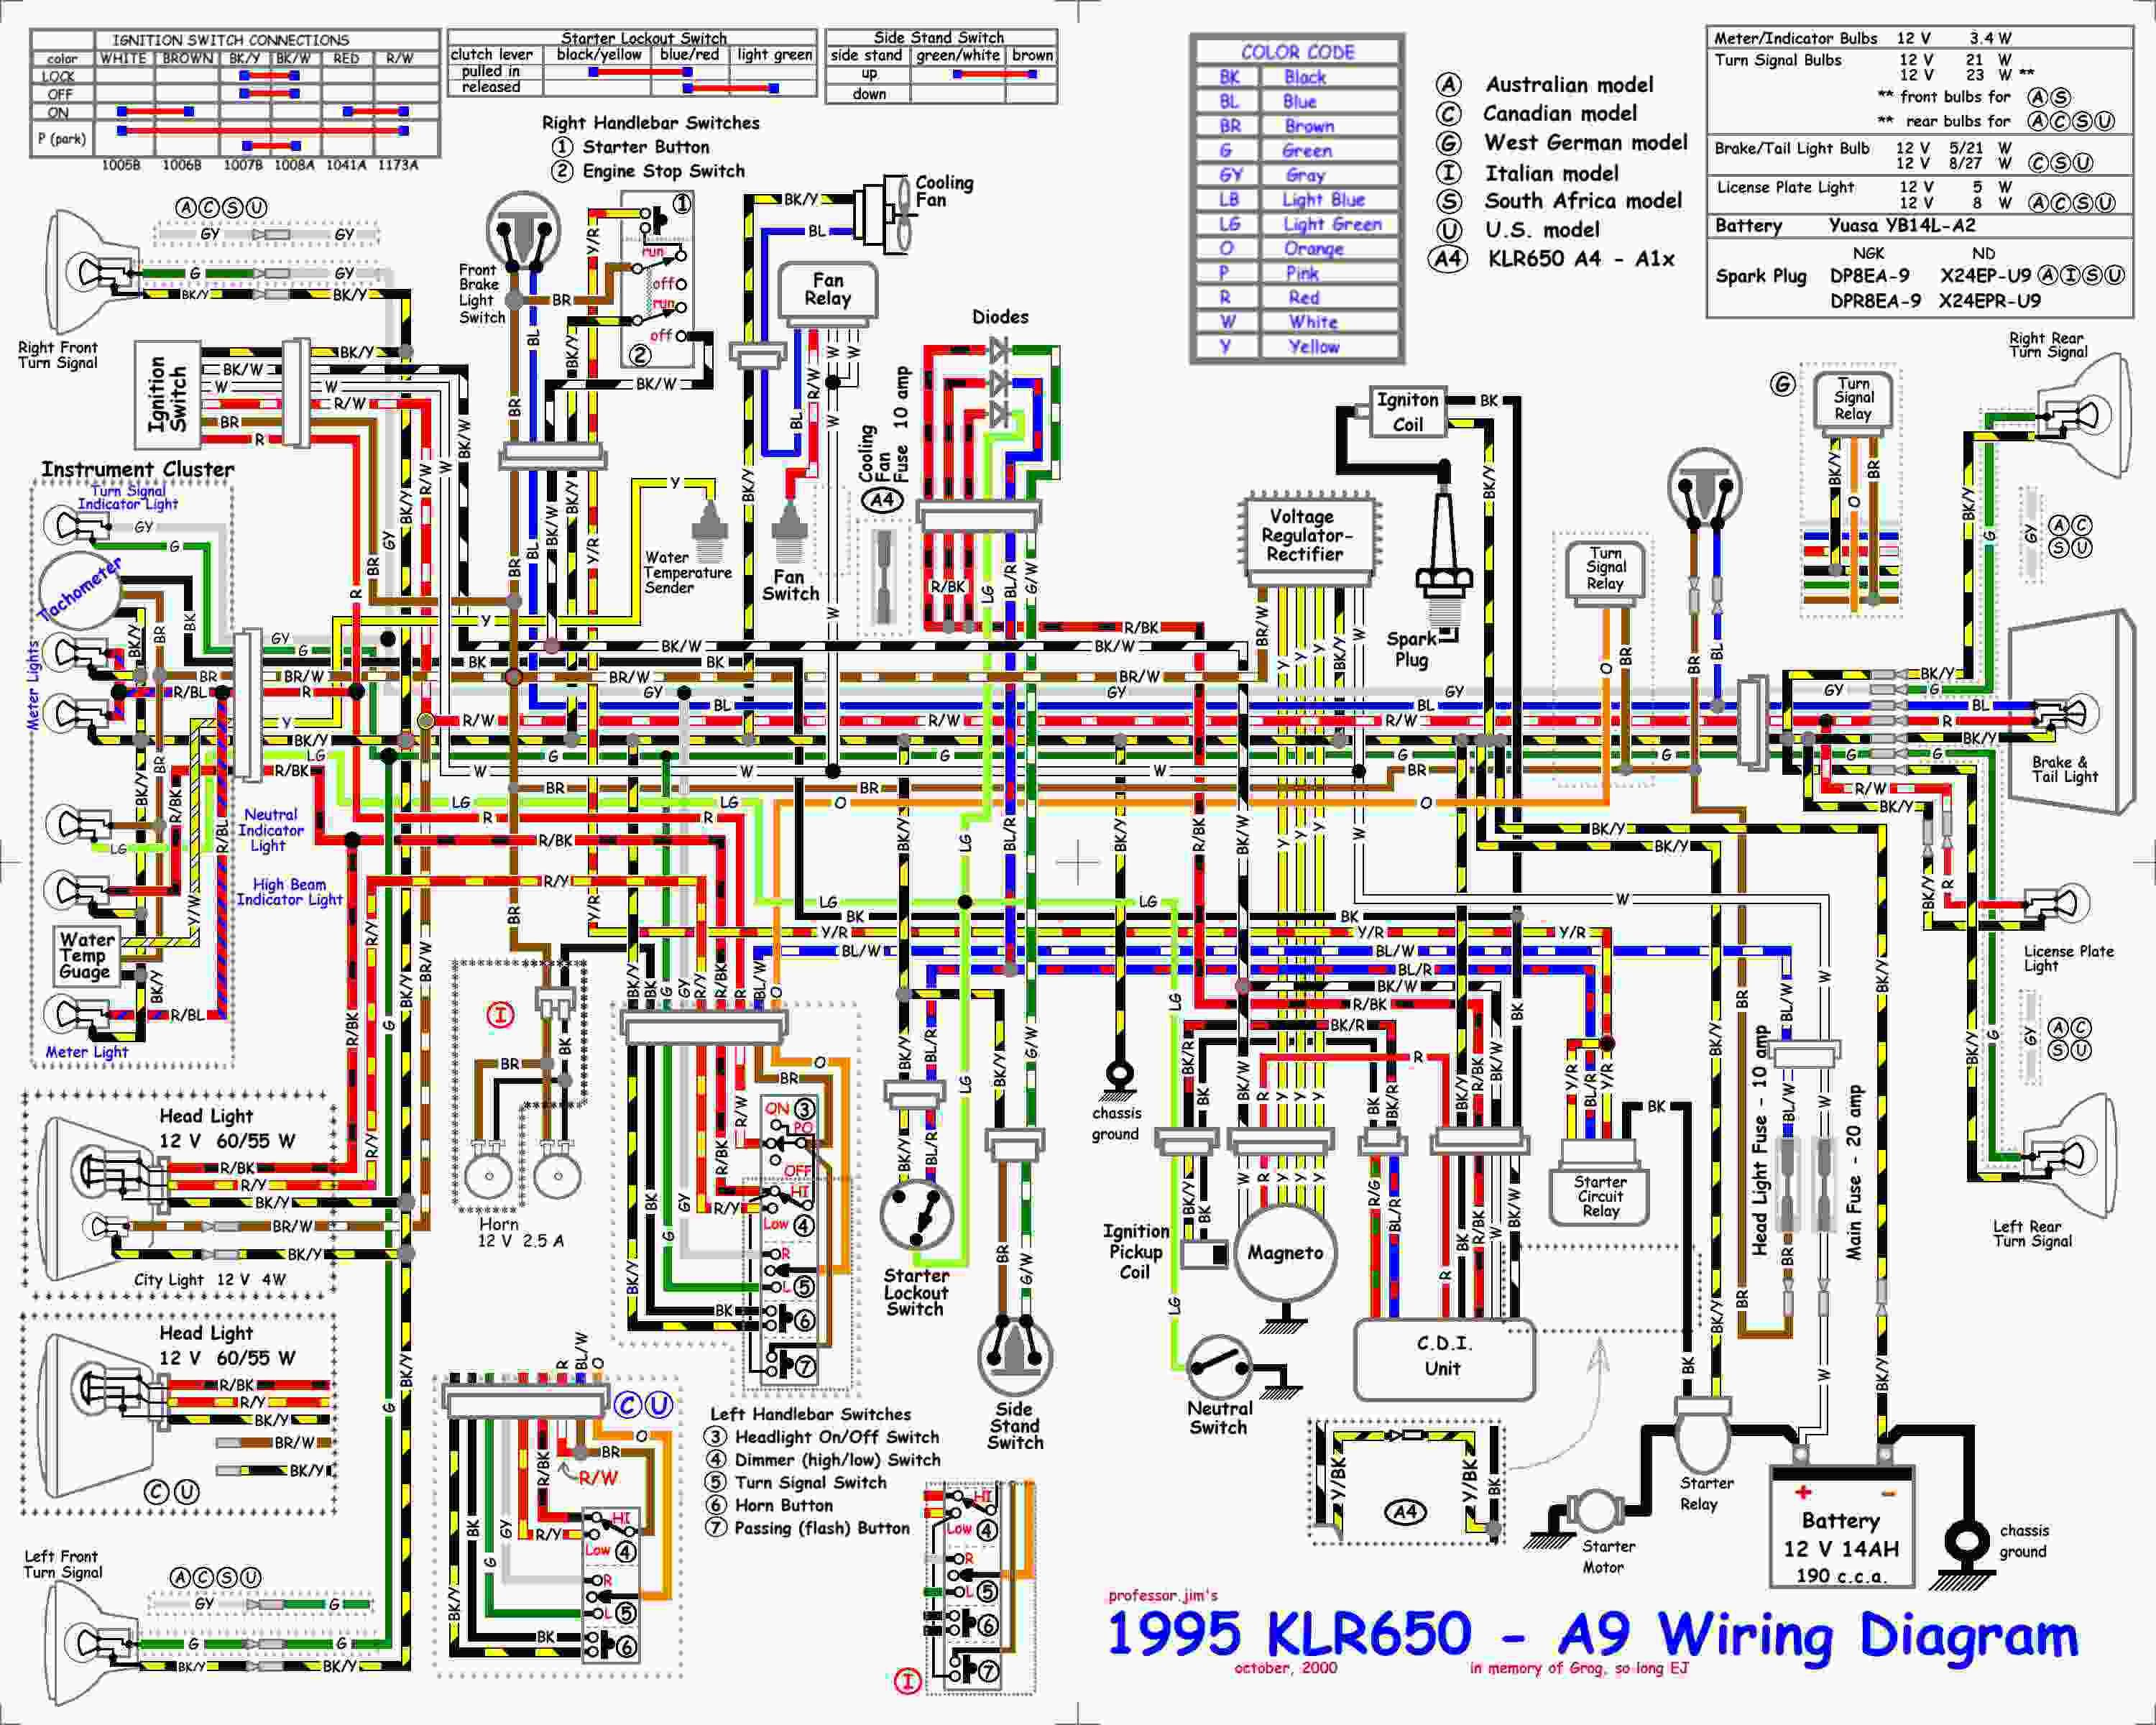 medium resolution of image result for cucv wiring diagram automotive electrical 98 chevy wiring schematics